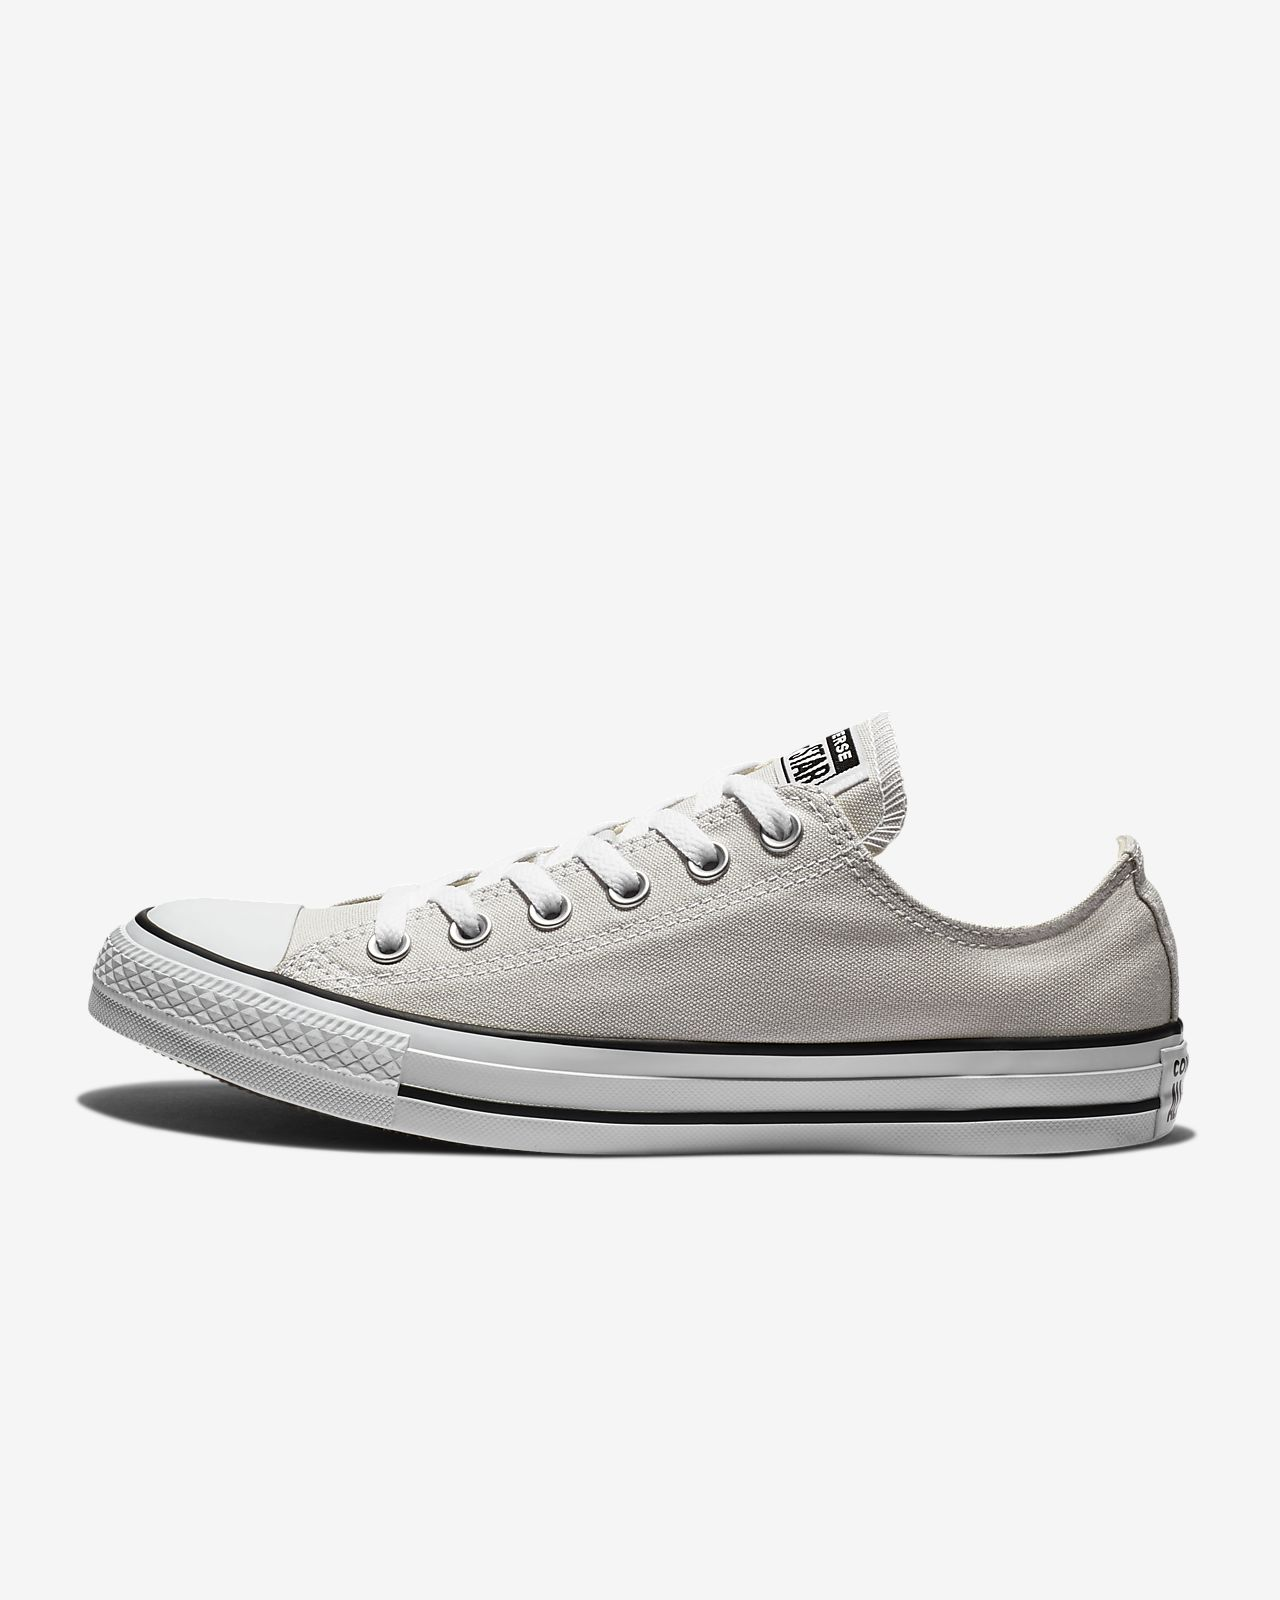 206e5316256 Converse Chuck Taylor All Star Seasonal Colors Low Top Unisex Shoe ...